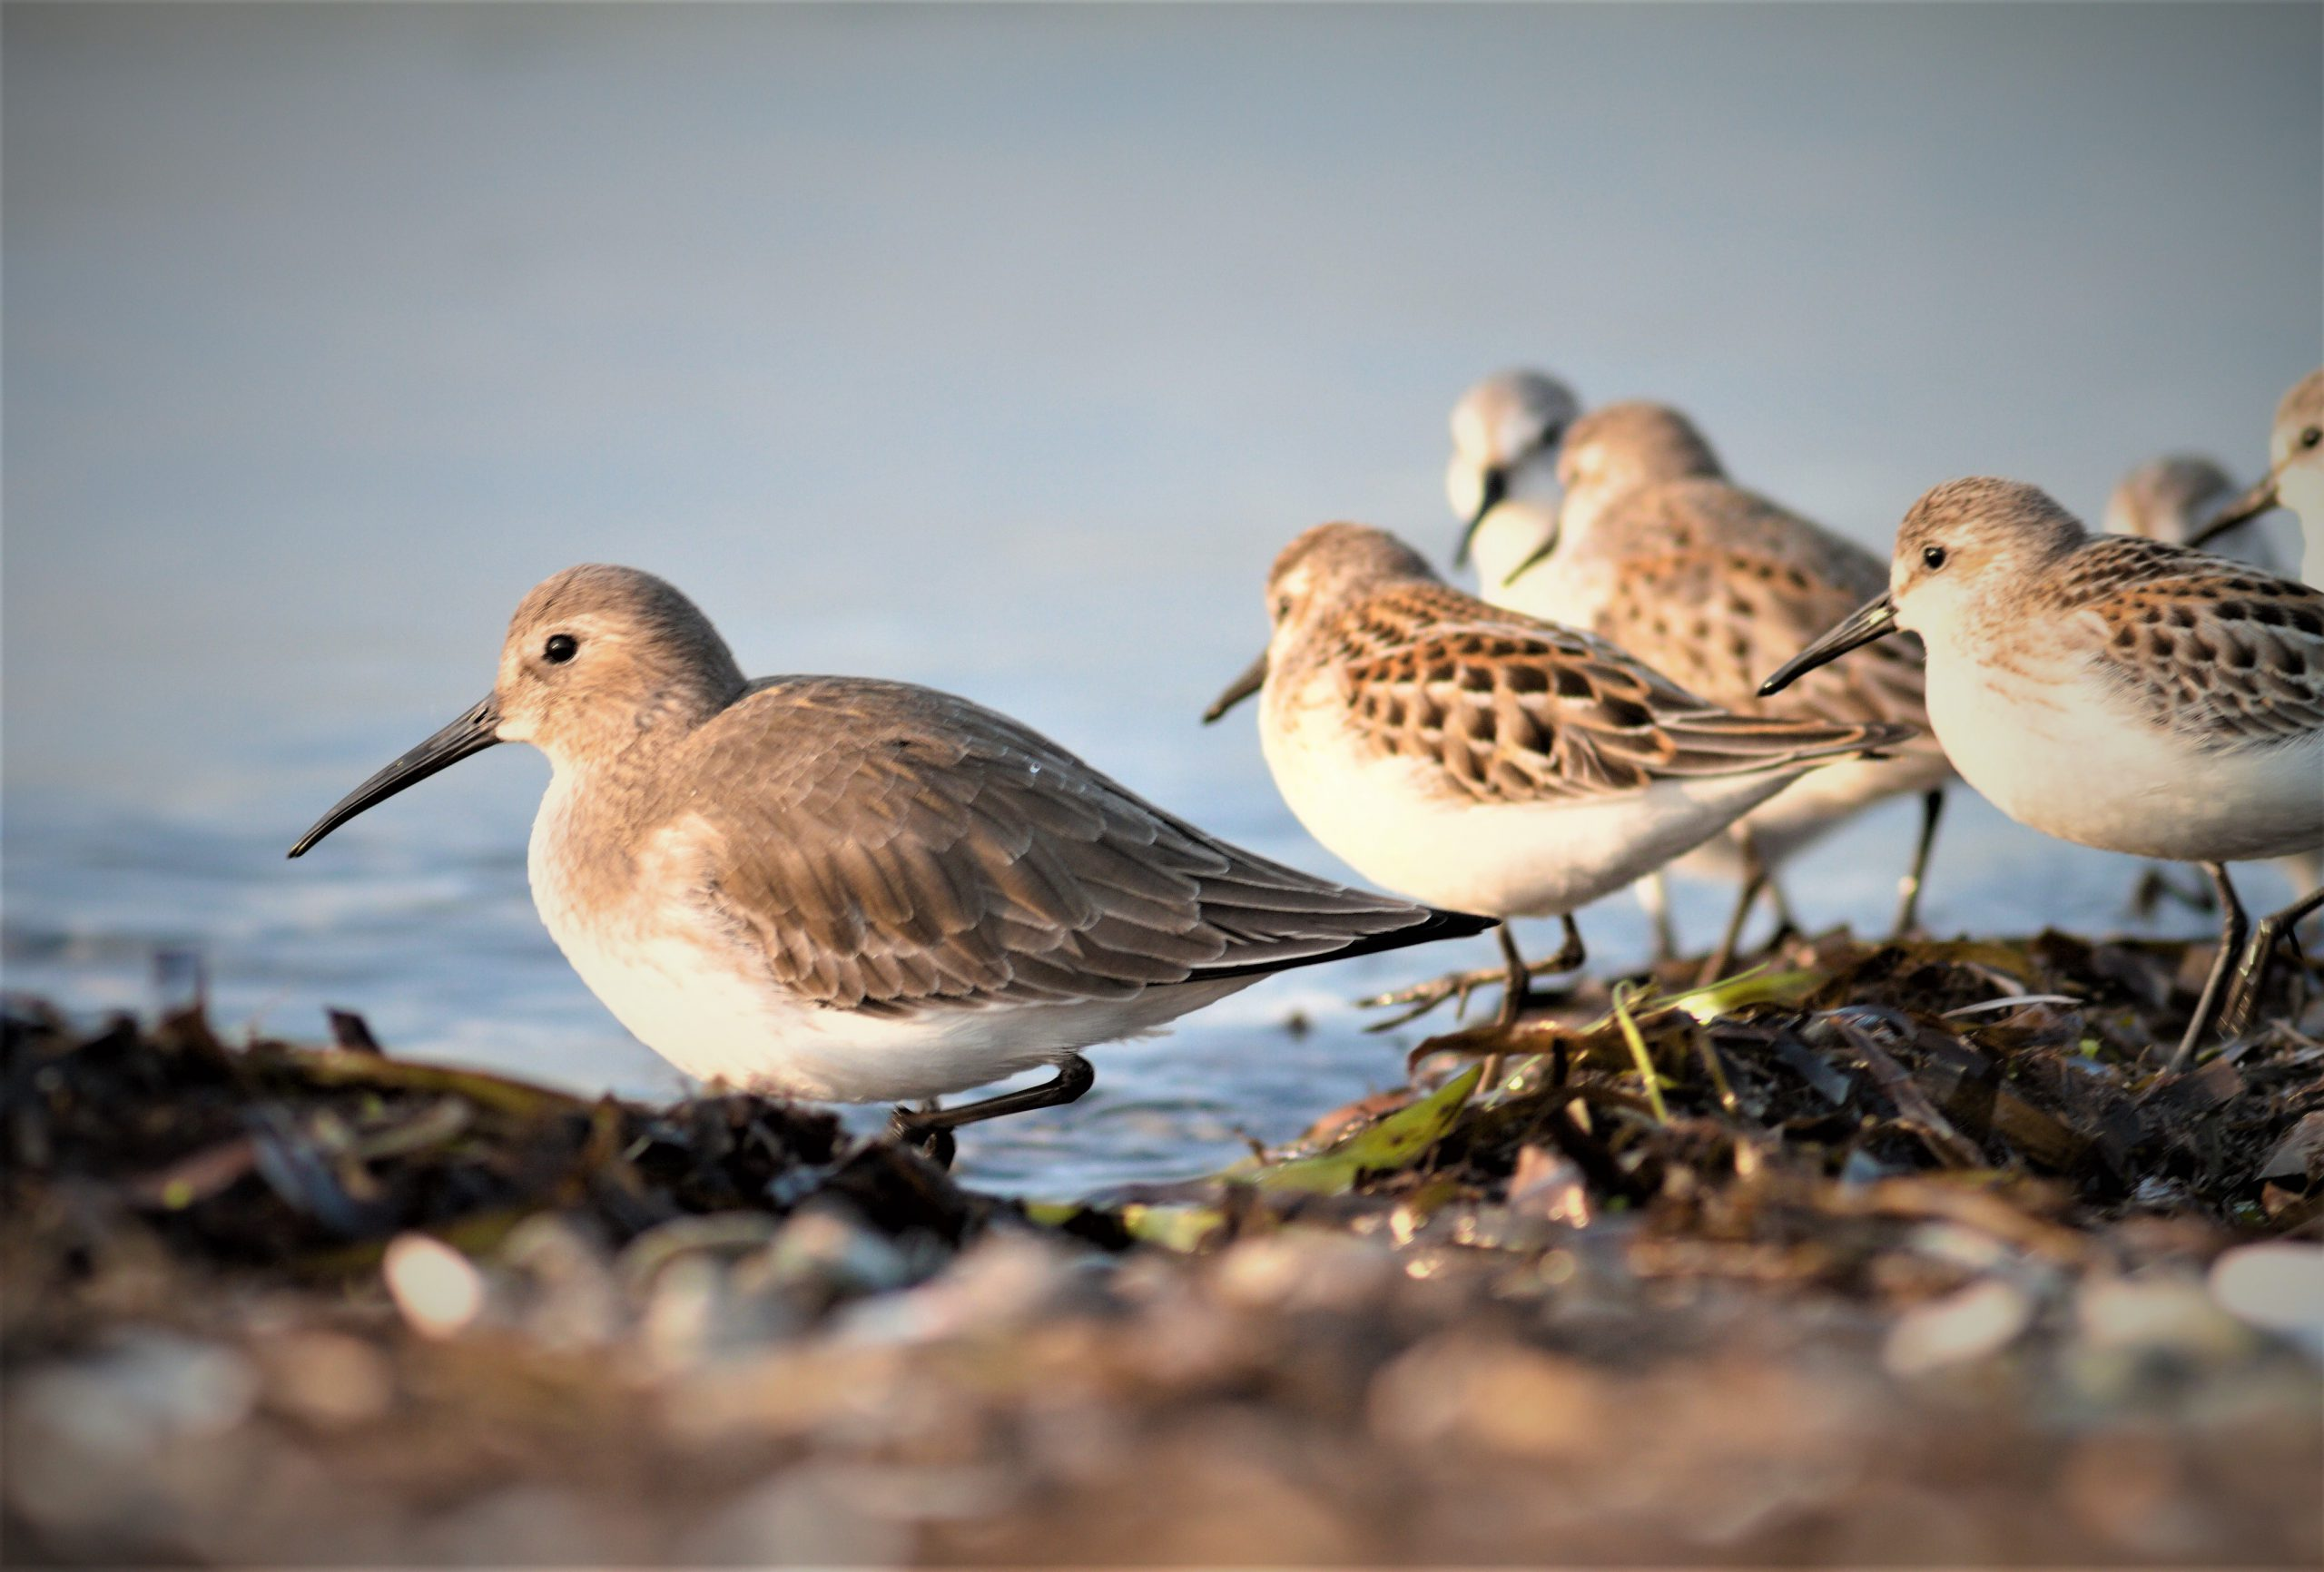 Shorebirds (Dunlin and Western Sandpipers) roosting